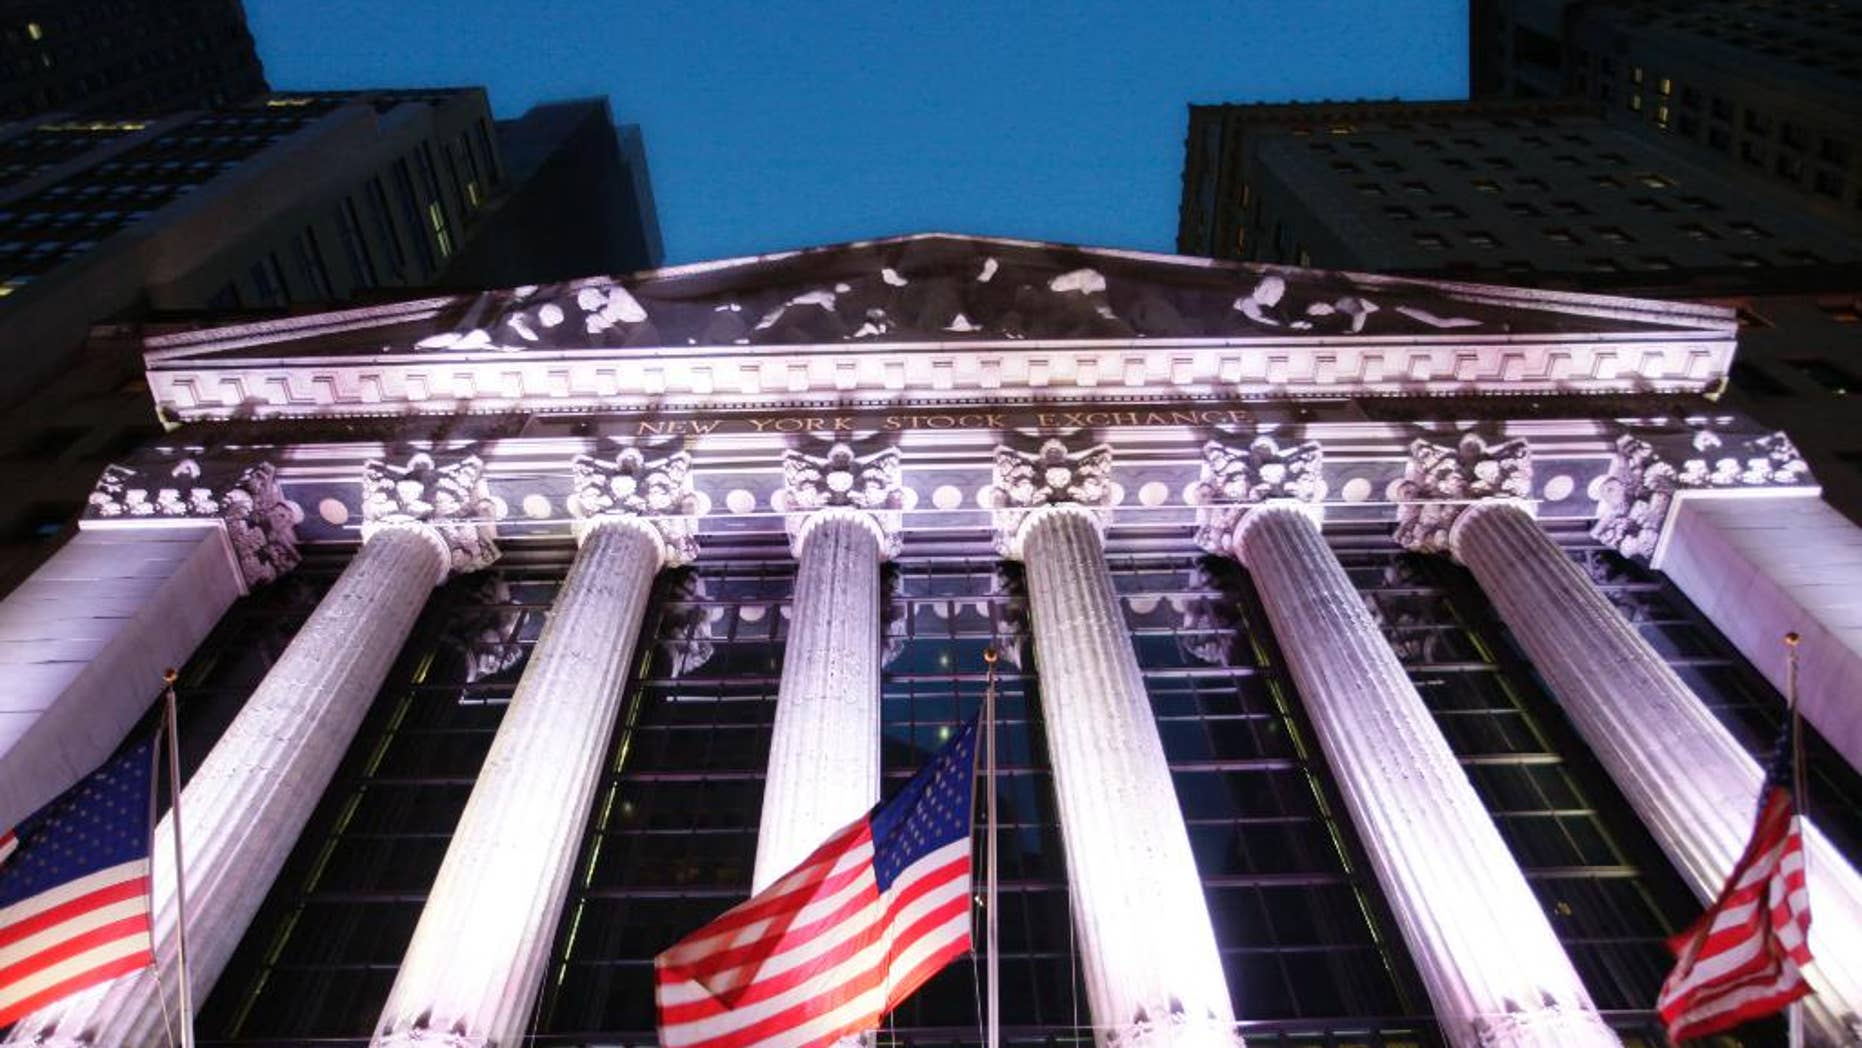 In this Wednesday, Oct. 8, 2014 photo, American flags fly in front of the New York Stock Exchange, in New York. A strong report on job creation pushed stock indexes higher Friday, Dec. 5, 2014, even though the figures may prompt the Federal Reserve to raise interest rates sooner than anticipated. The dollar rose as traders anticipated more robust growth in the U.S. (AP Photo/Mark Lennihan)